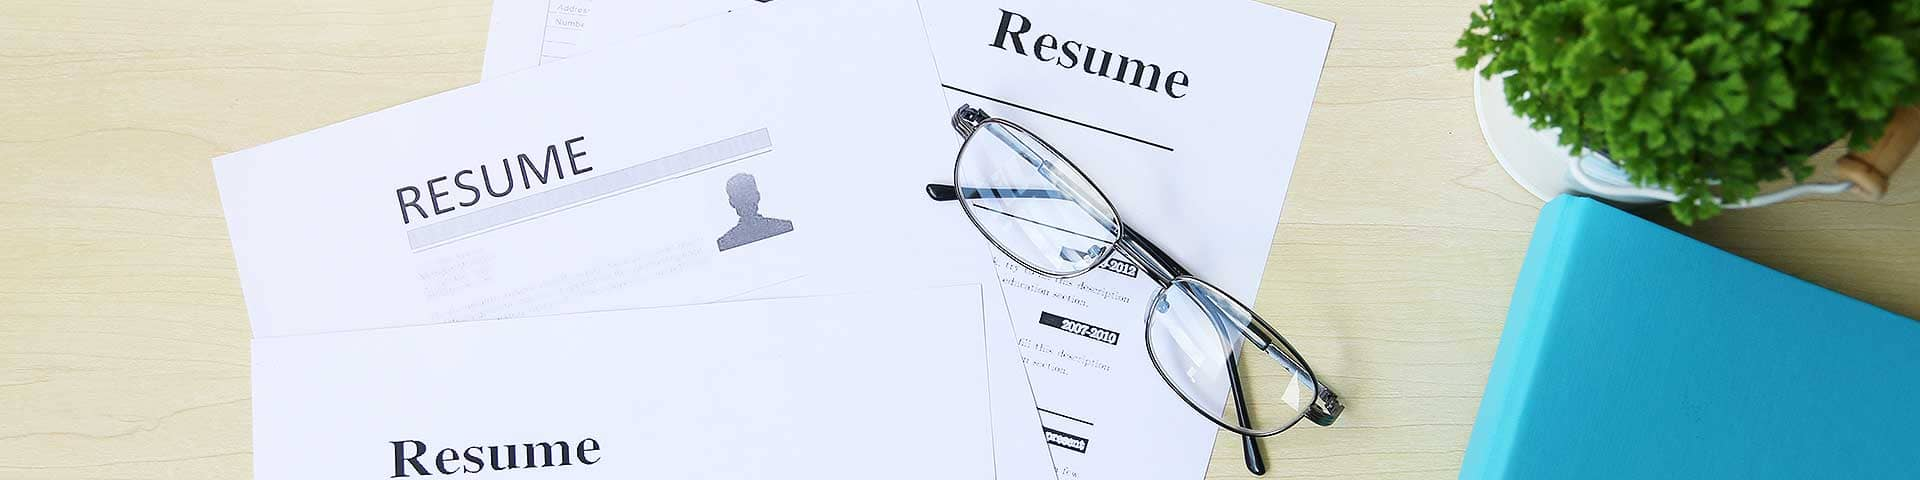 <span>We'll Get Your</span> Resume Ready